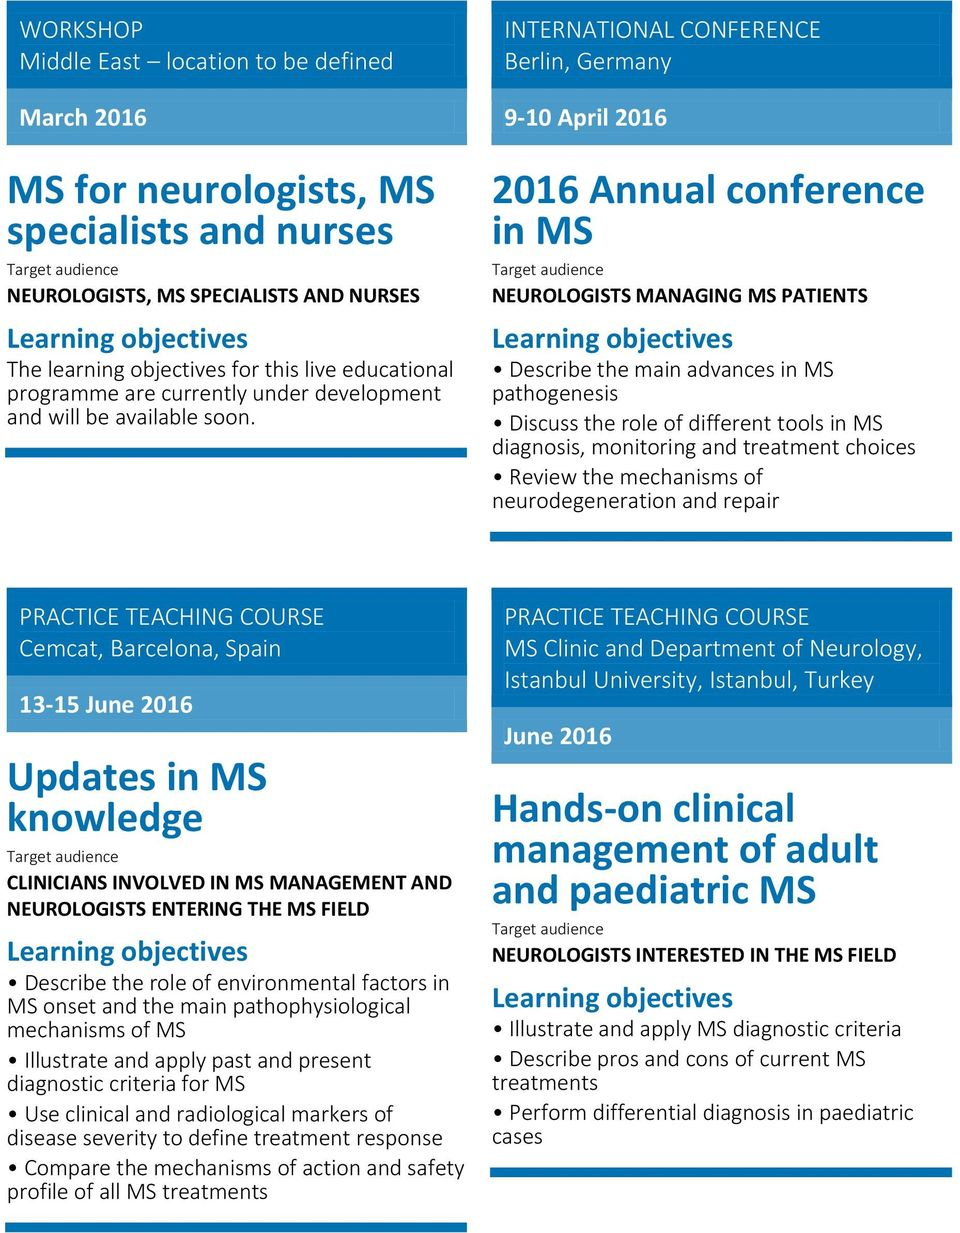 the mechanisms of neurodegeneration and repair Cemcat, Barcelona, Spain 13-15 June 2016 Updates in MS knowledge CLINICIANS INVOLVED IN MS MANAGEMENT AND NEUROLOGISTS ENTERING THE MS FIELD Describe